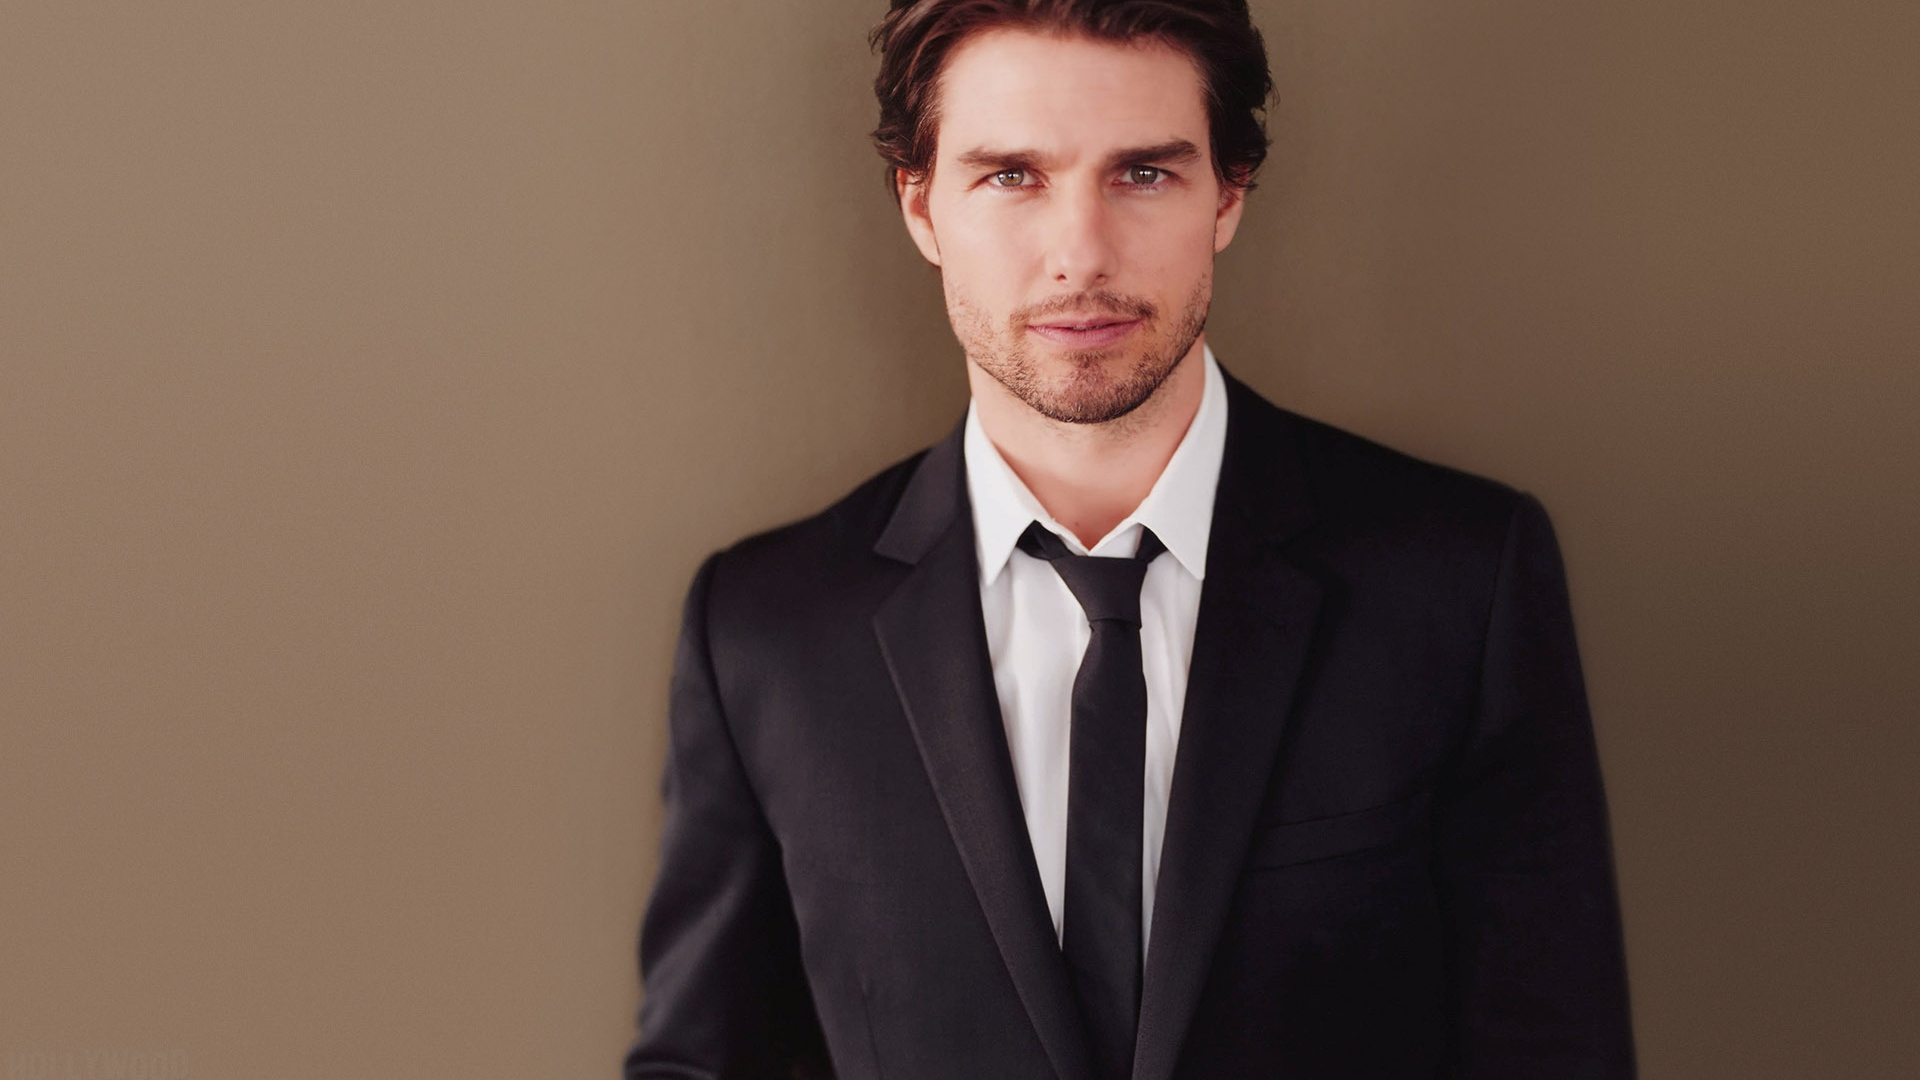 download wallpaper 1920x1080 tom cruise, tuxedo, tie, actor full hd